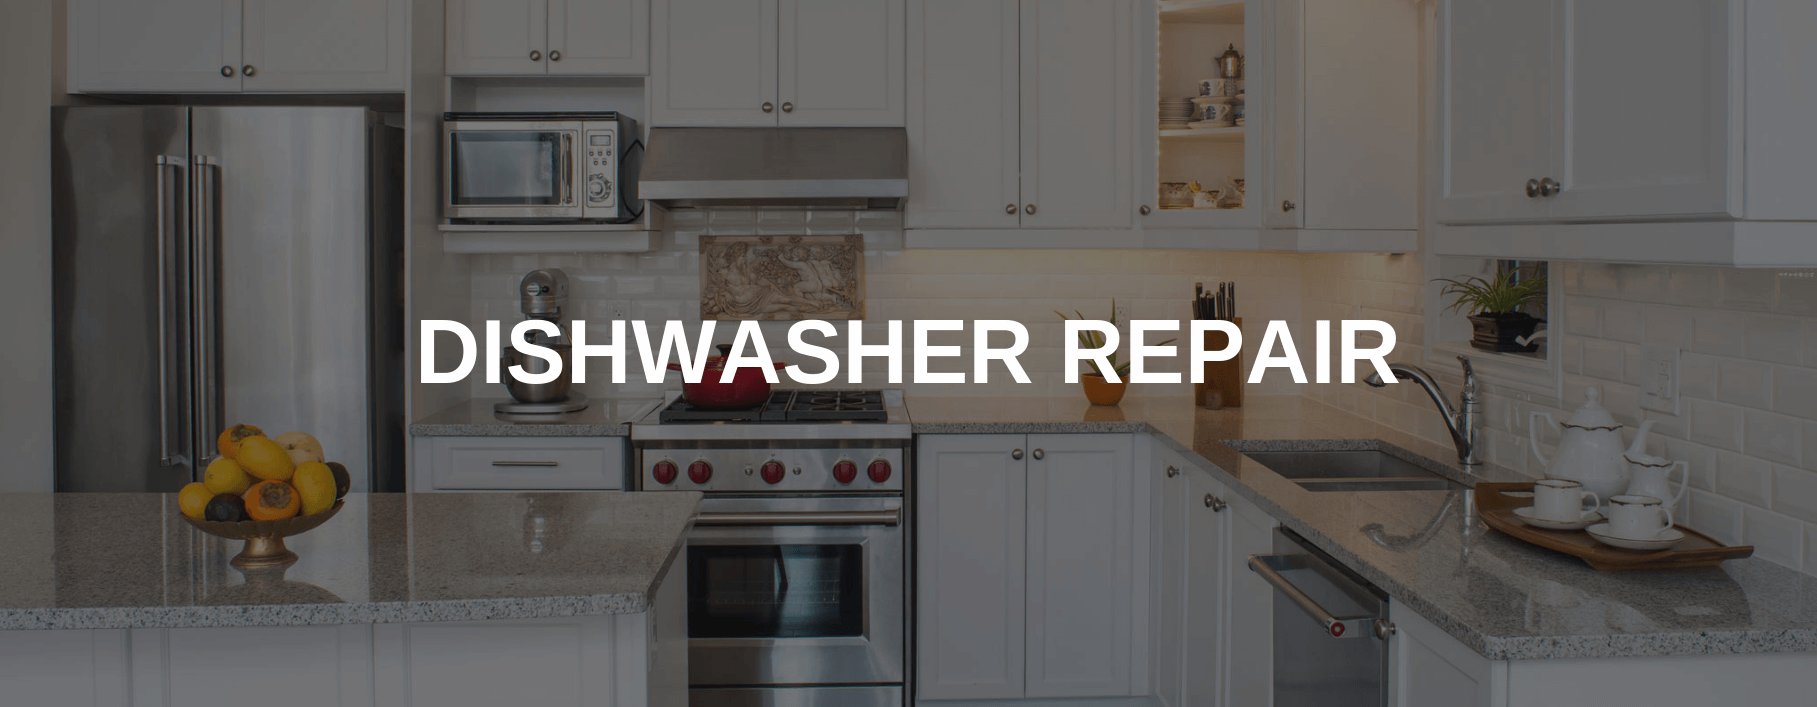 dishwasher repair cincinnati